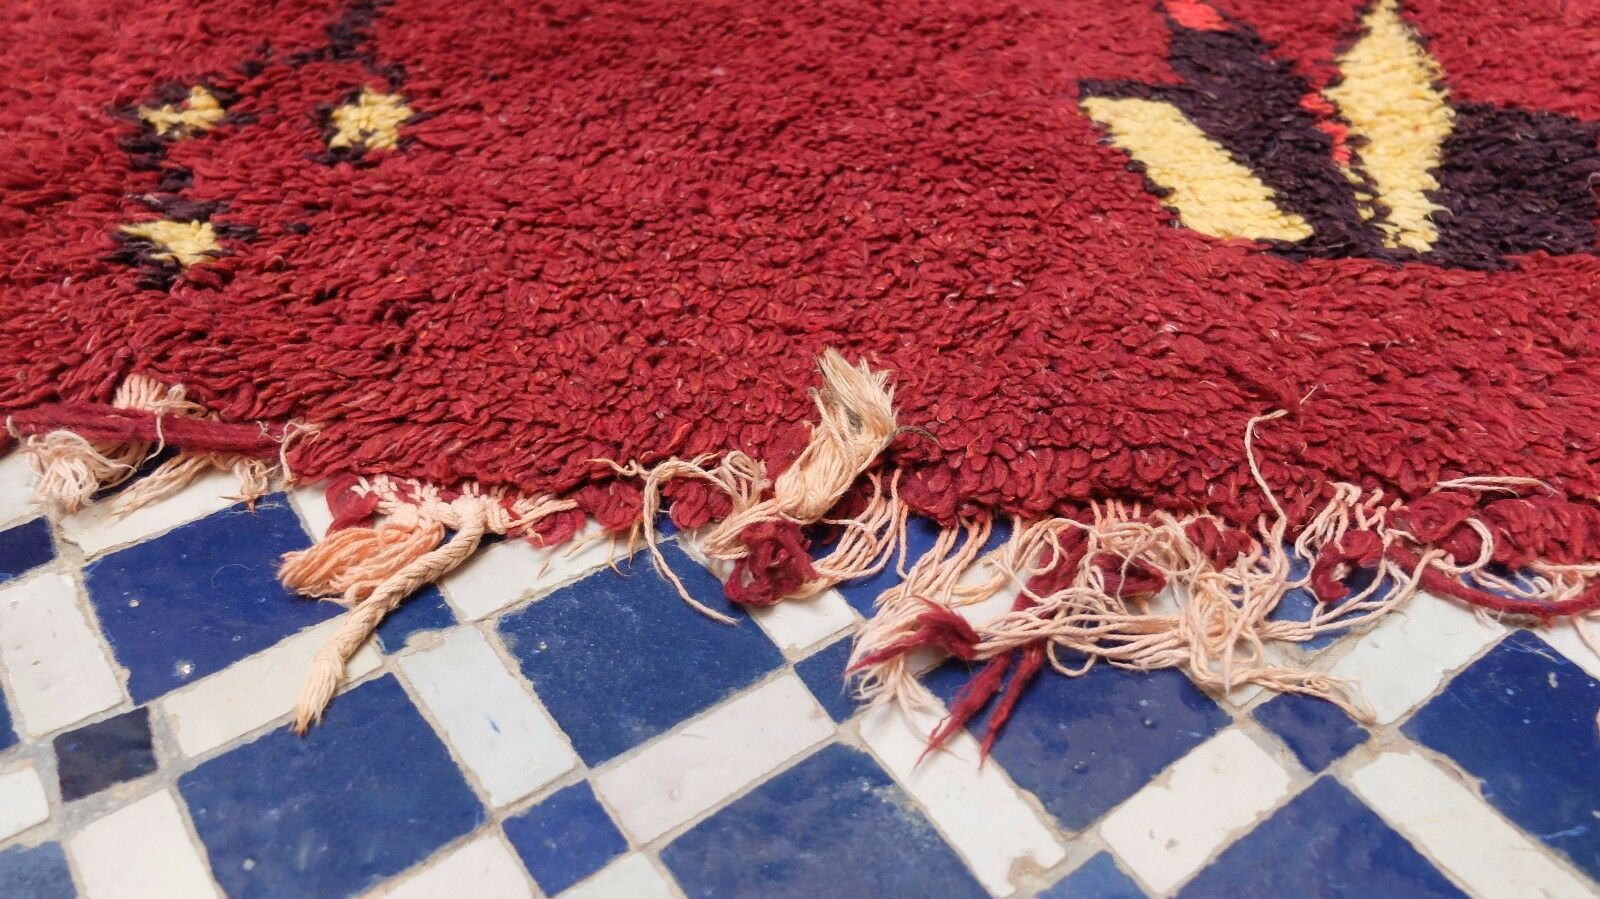 Vintage Rag Rag Rag MGoldccan Hand Woven by Berber Rug Azilal Autentic Rugs 8'1'' 4'9'' d1461d